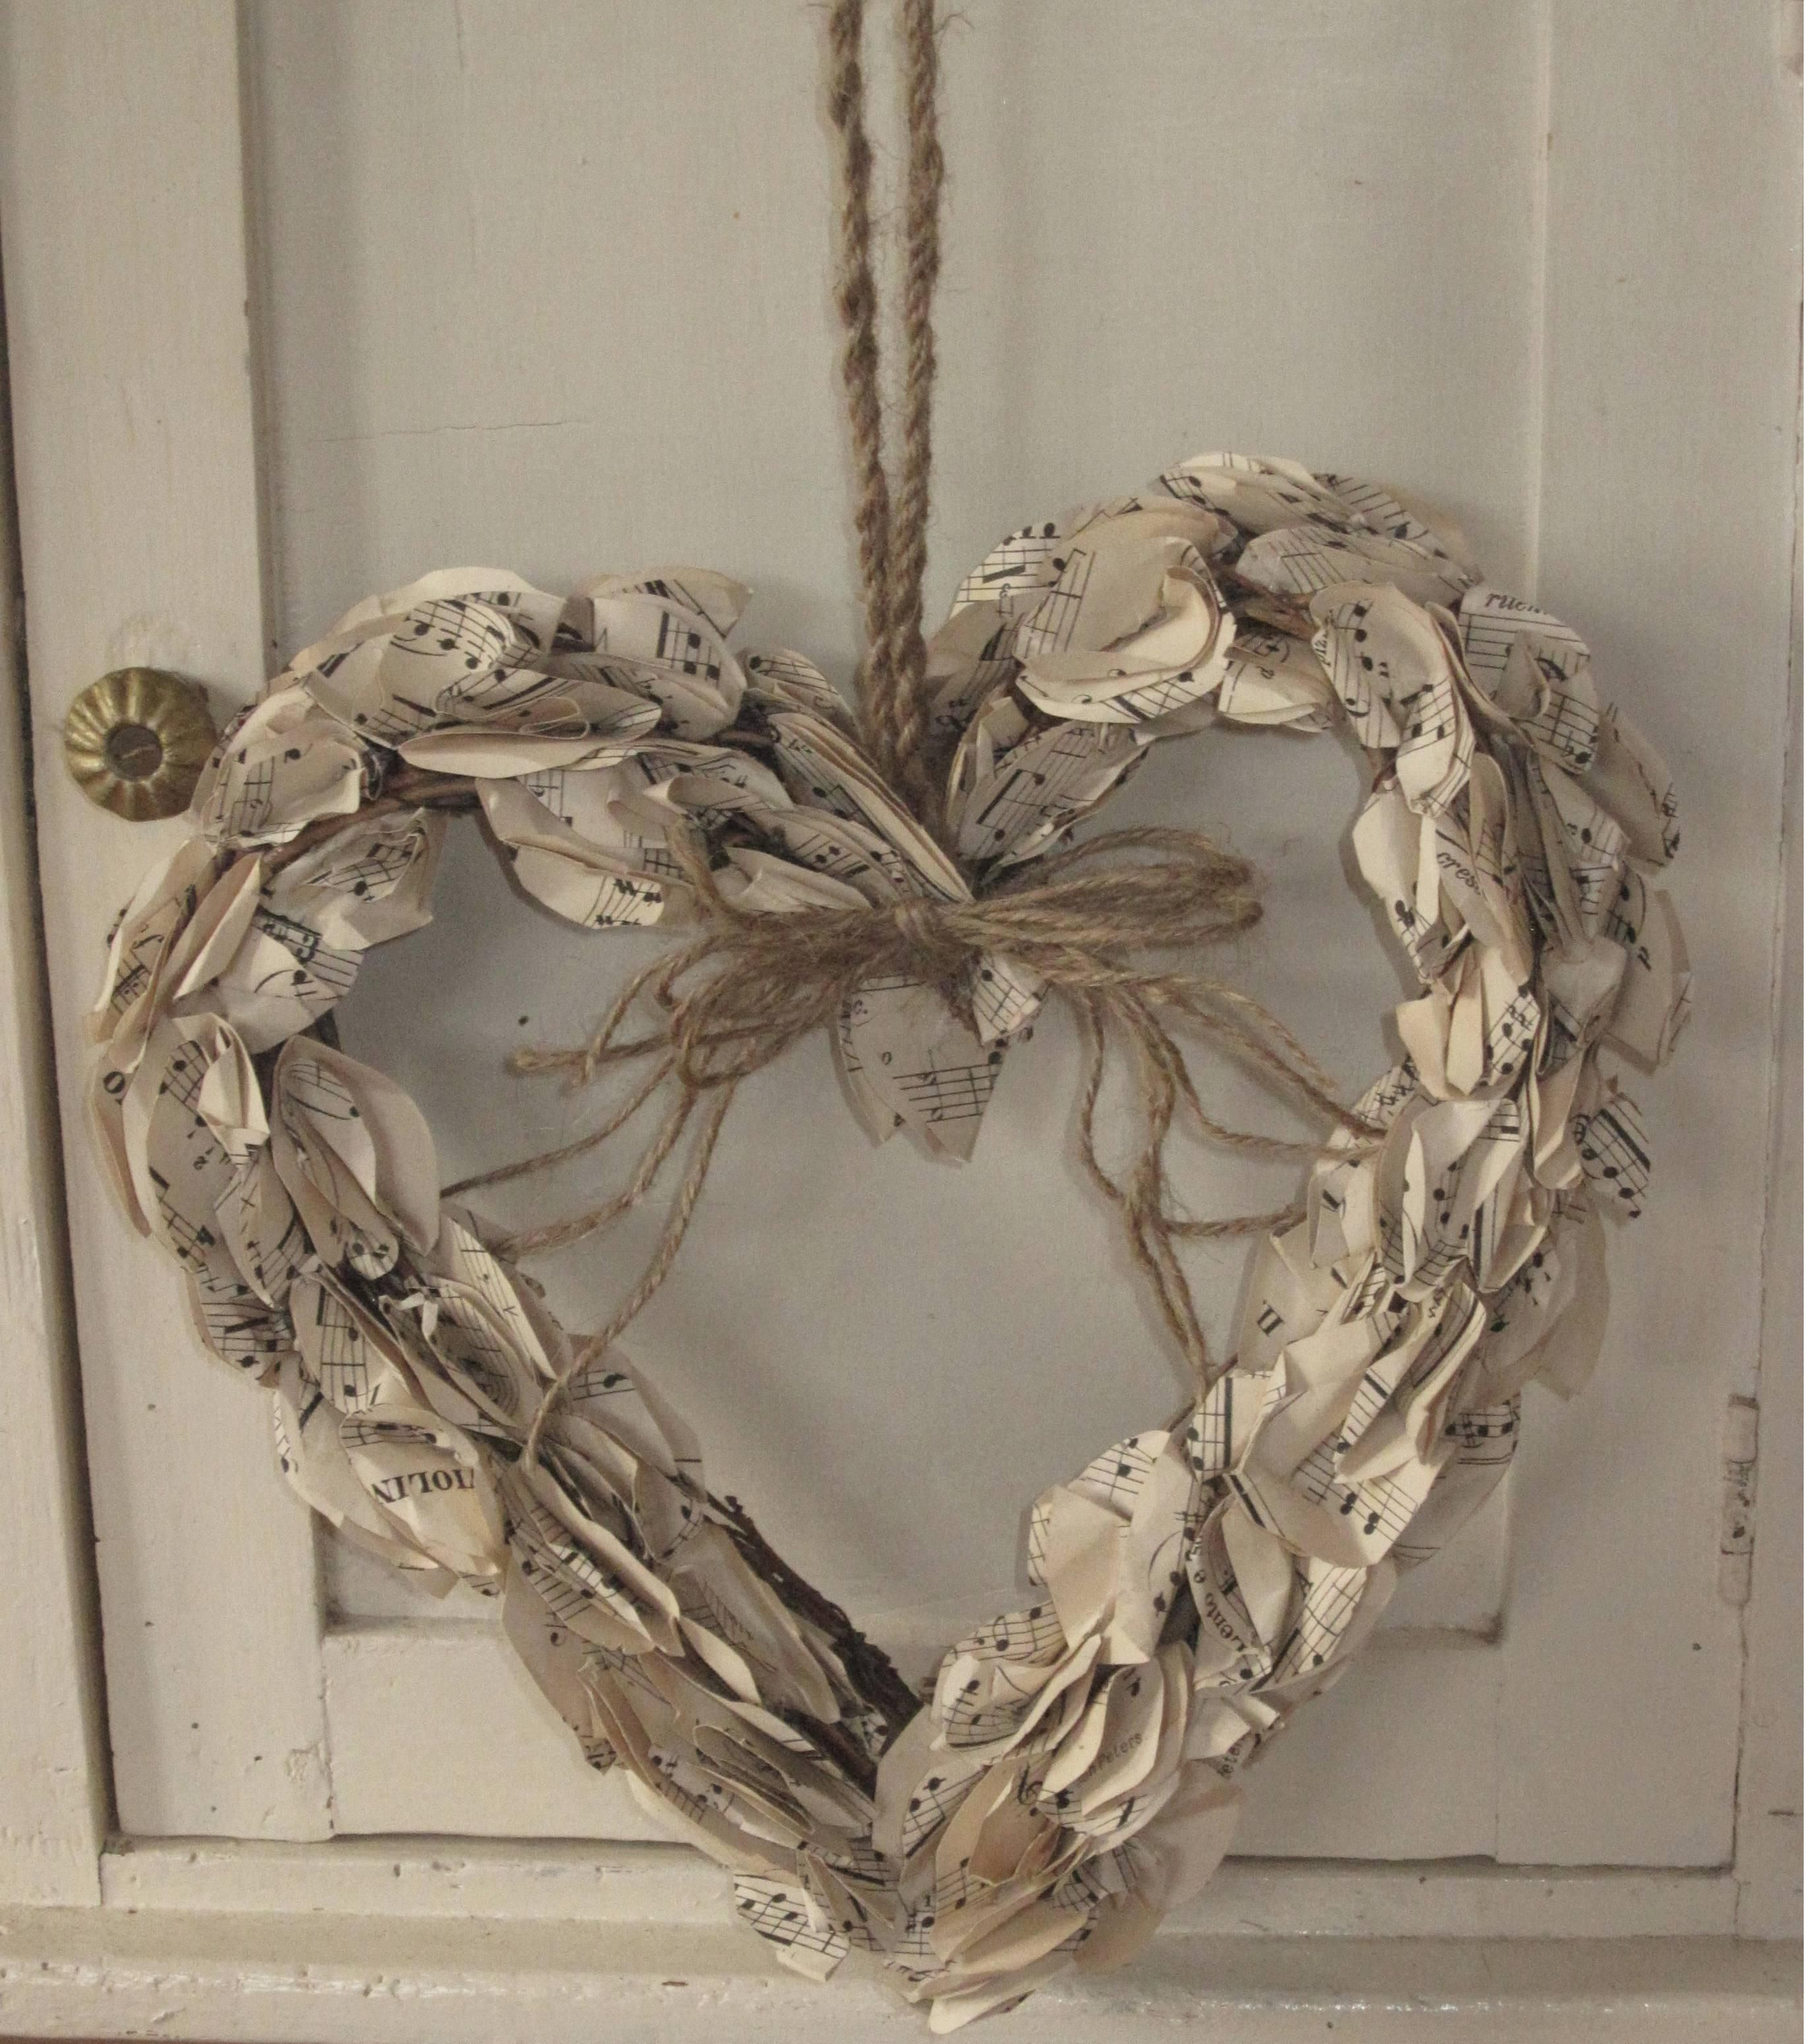 Wooden heart shabby chic with old sheet music